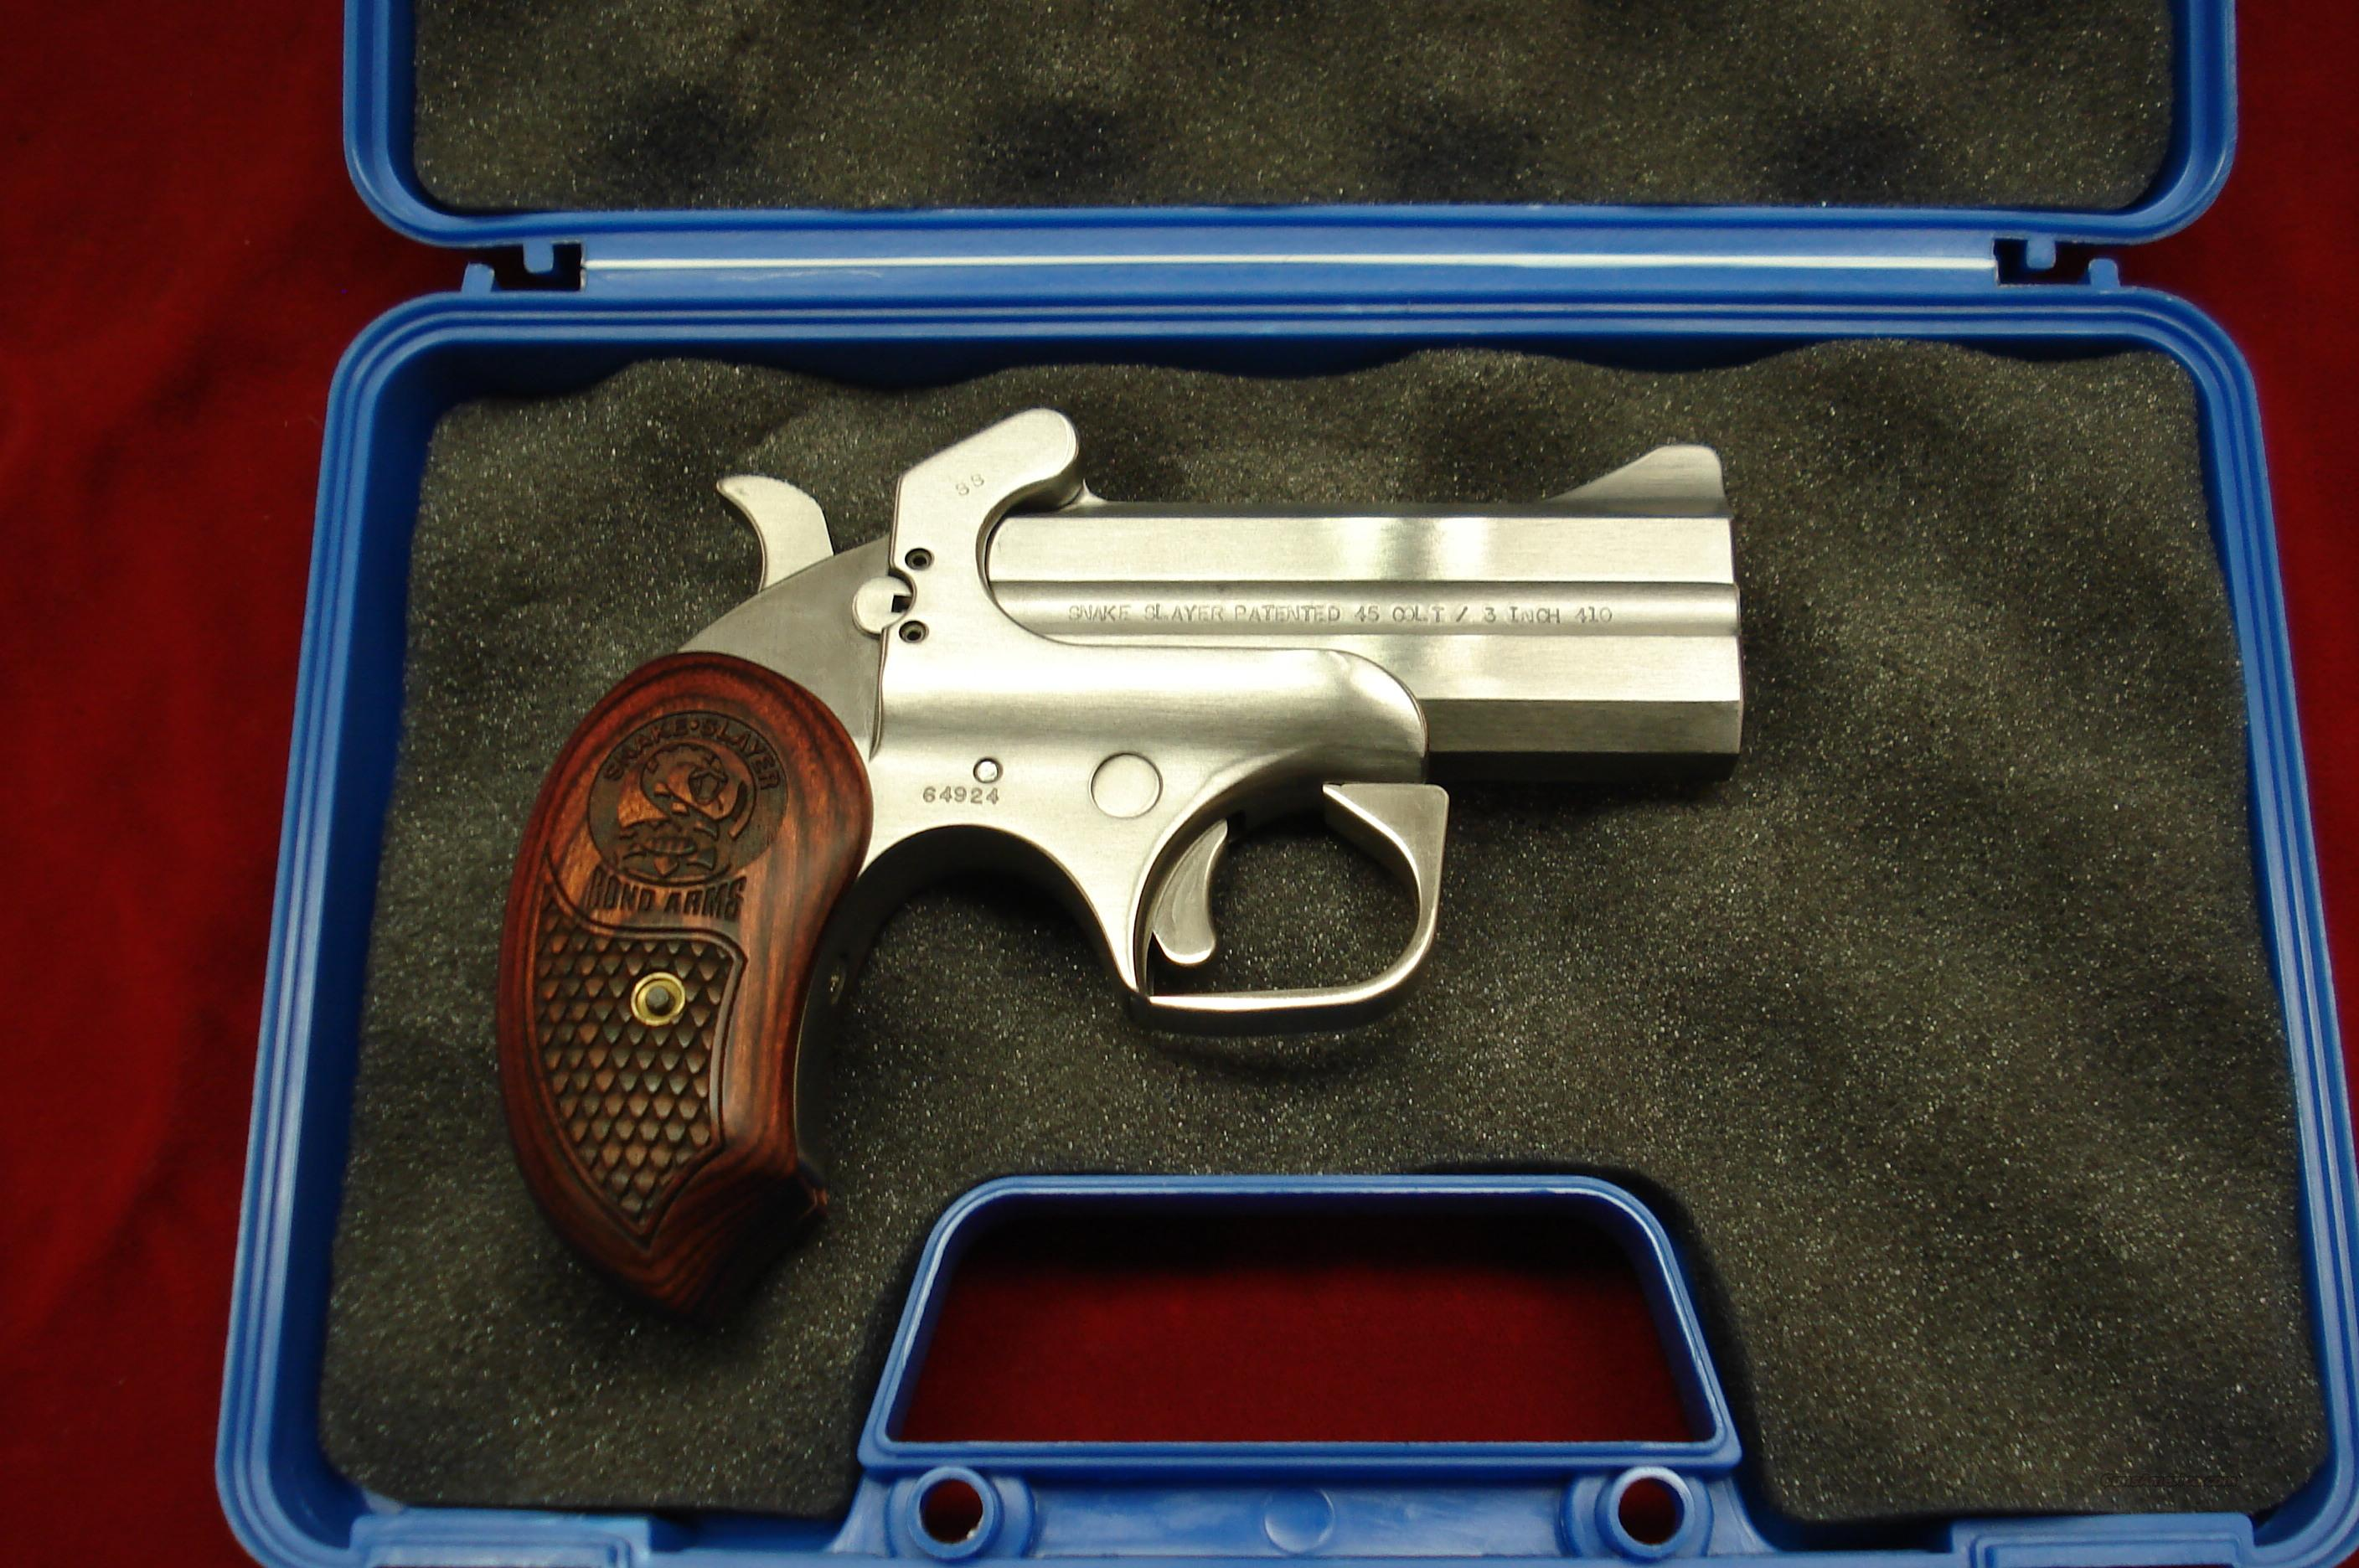 BOND ARMS SNAKE SLAYER 410G/45COLT STAINLESS DERRINGER NEW  Guns > Pistols > Bond Derringers